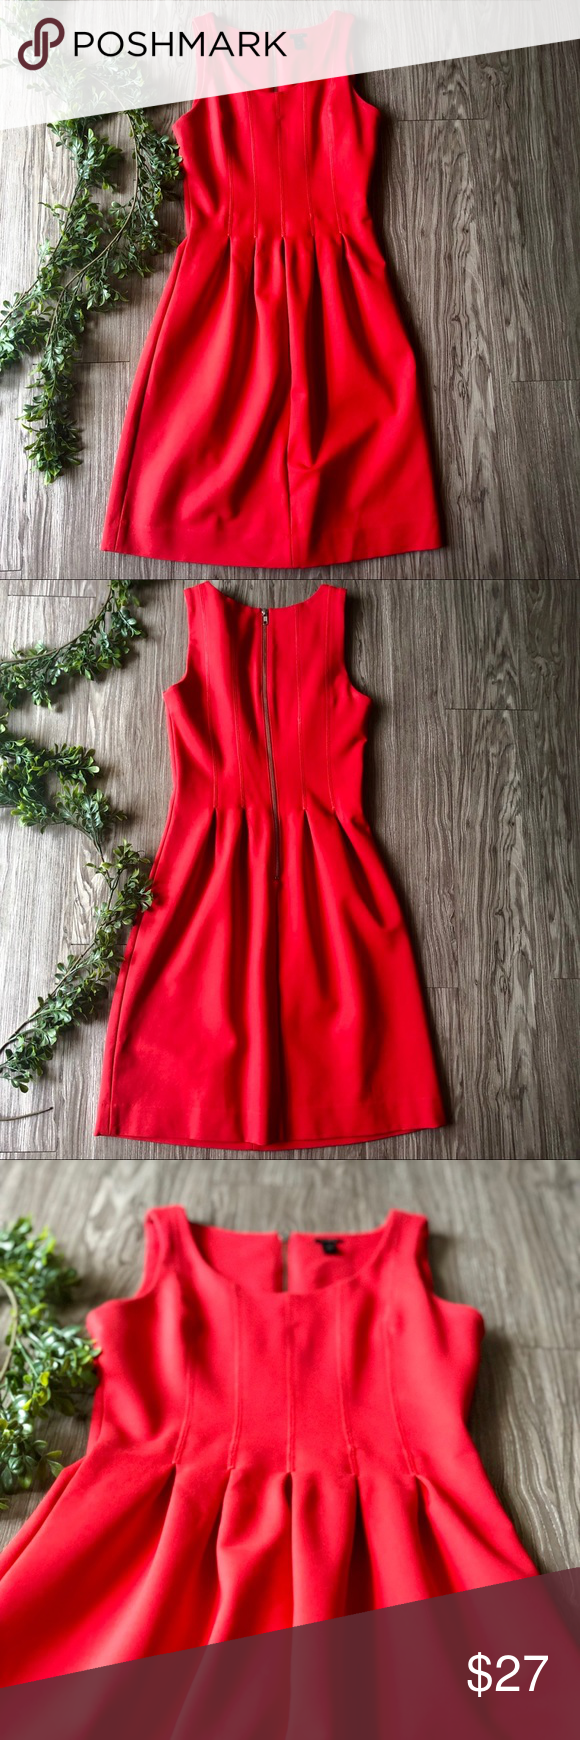 J Crew Red Pleated Dress J Crew Bright Red Pleated Dress. Scoop neck, thick spaghetti strap. Exposed zipper in back. Small area of discoloration on front, pictured, though very hard to see in photo and in person. Thick, super stretchy material. Good pre-owned condition.  Bust: 15